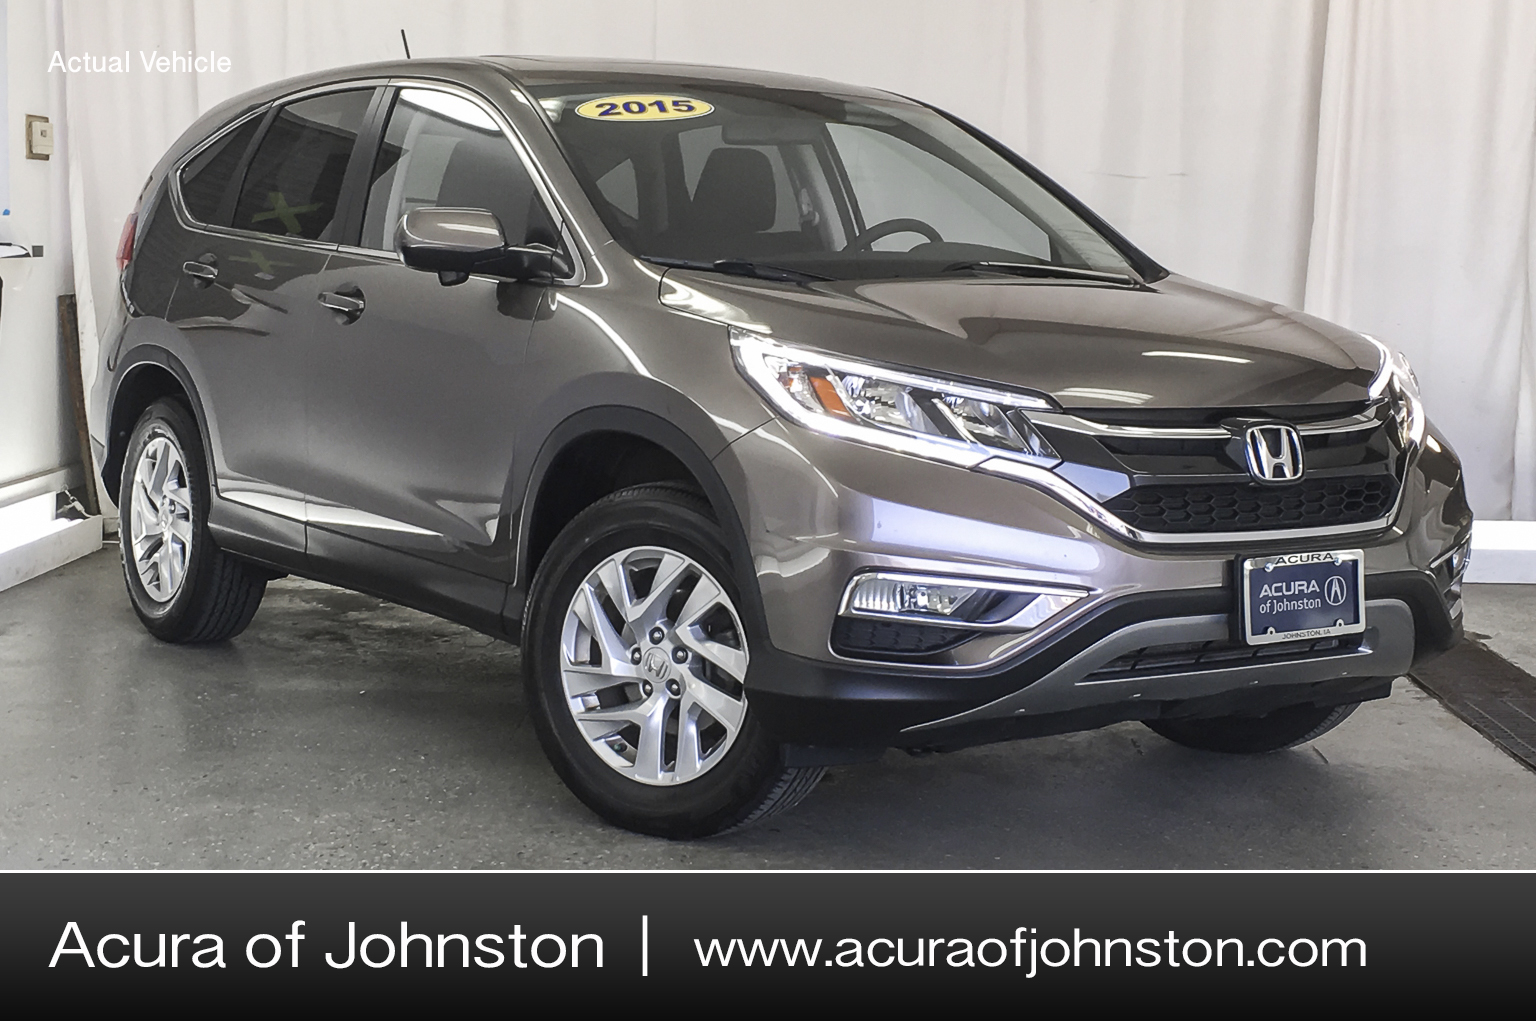 Location: Gowrie, IA